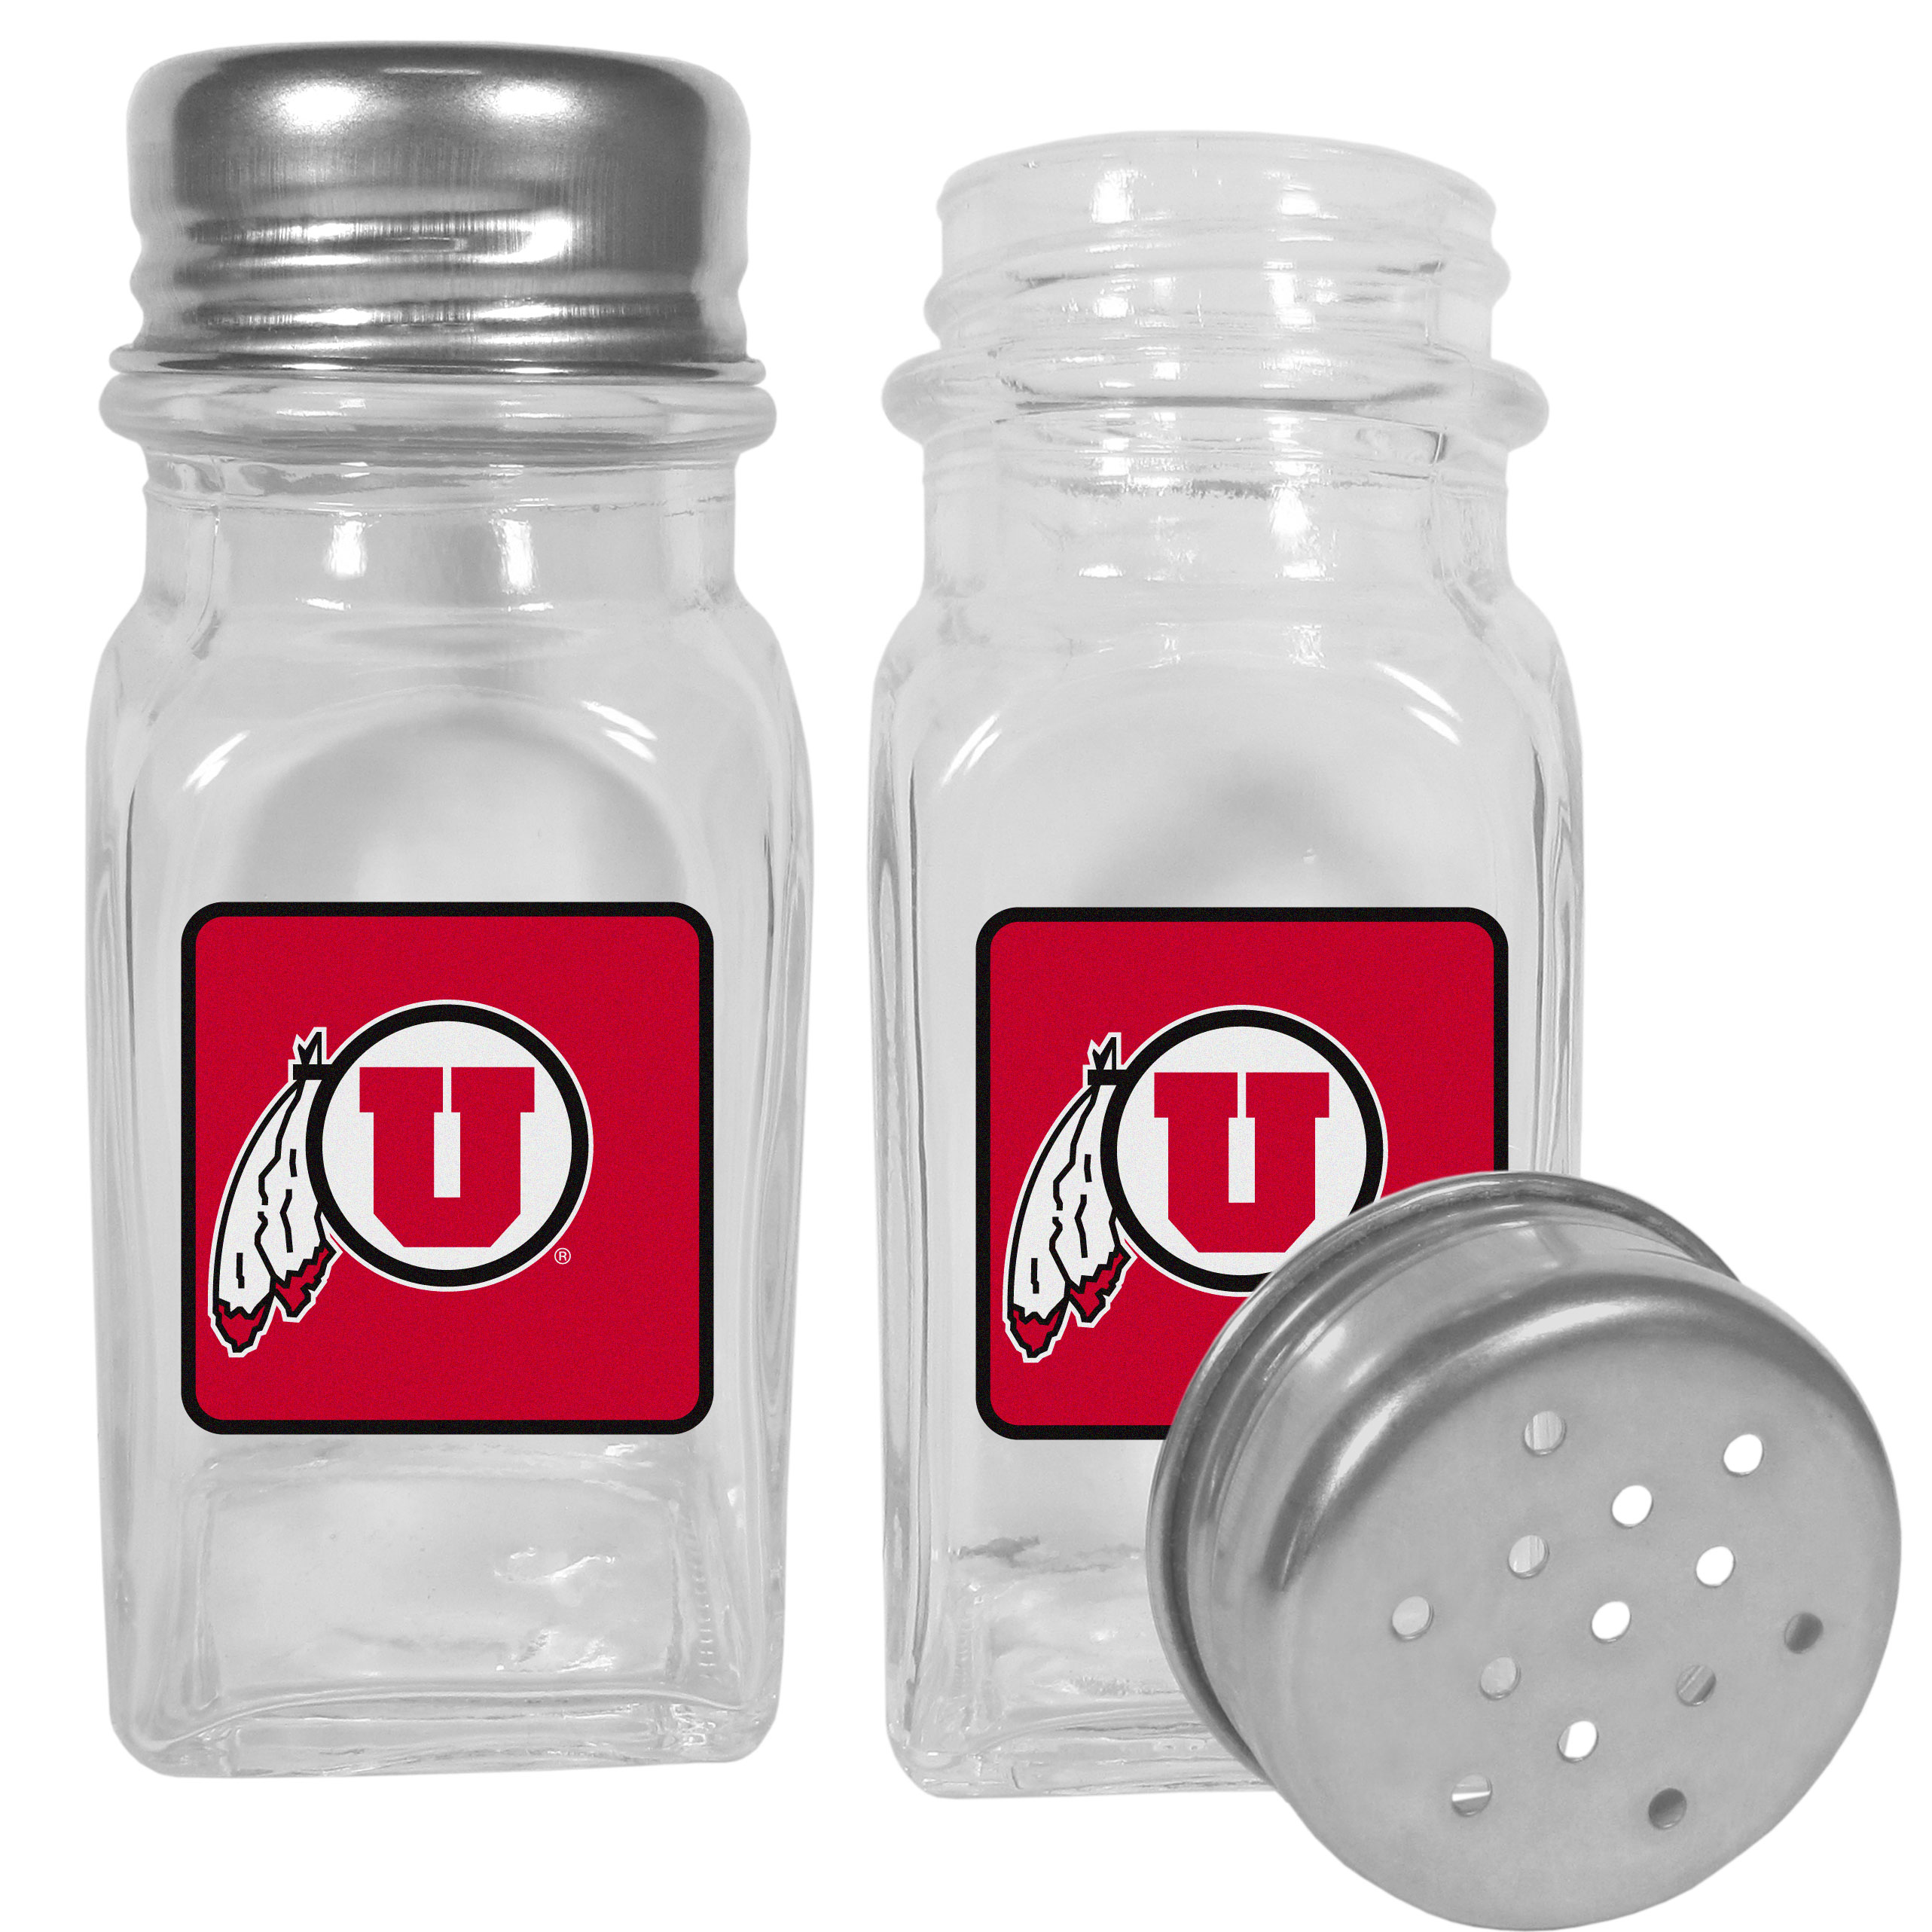 Utah Utes Graphics Salt and Pepper Shaker - No tailgate party is complete without your Utah Utes salt & pepper shakers featuring bright team logos. The diner replica salt and pepper shakers are glass with screw top lids. These team shakers are a great grill accessory whether you are barbecuing on the patio, picnicing or having a game day party.